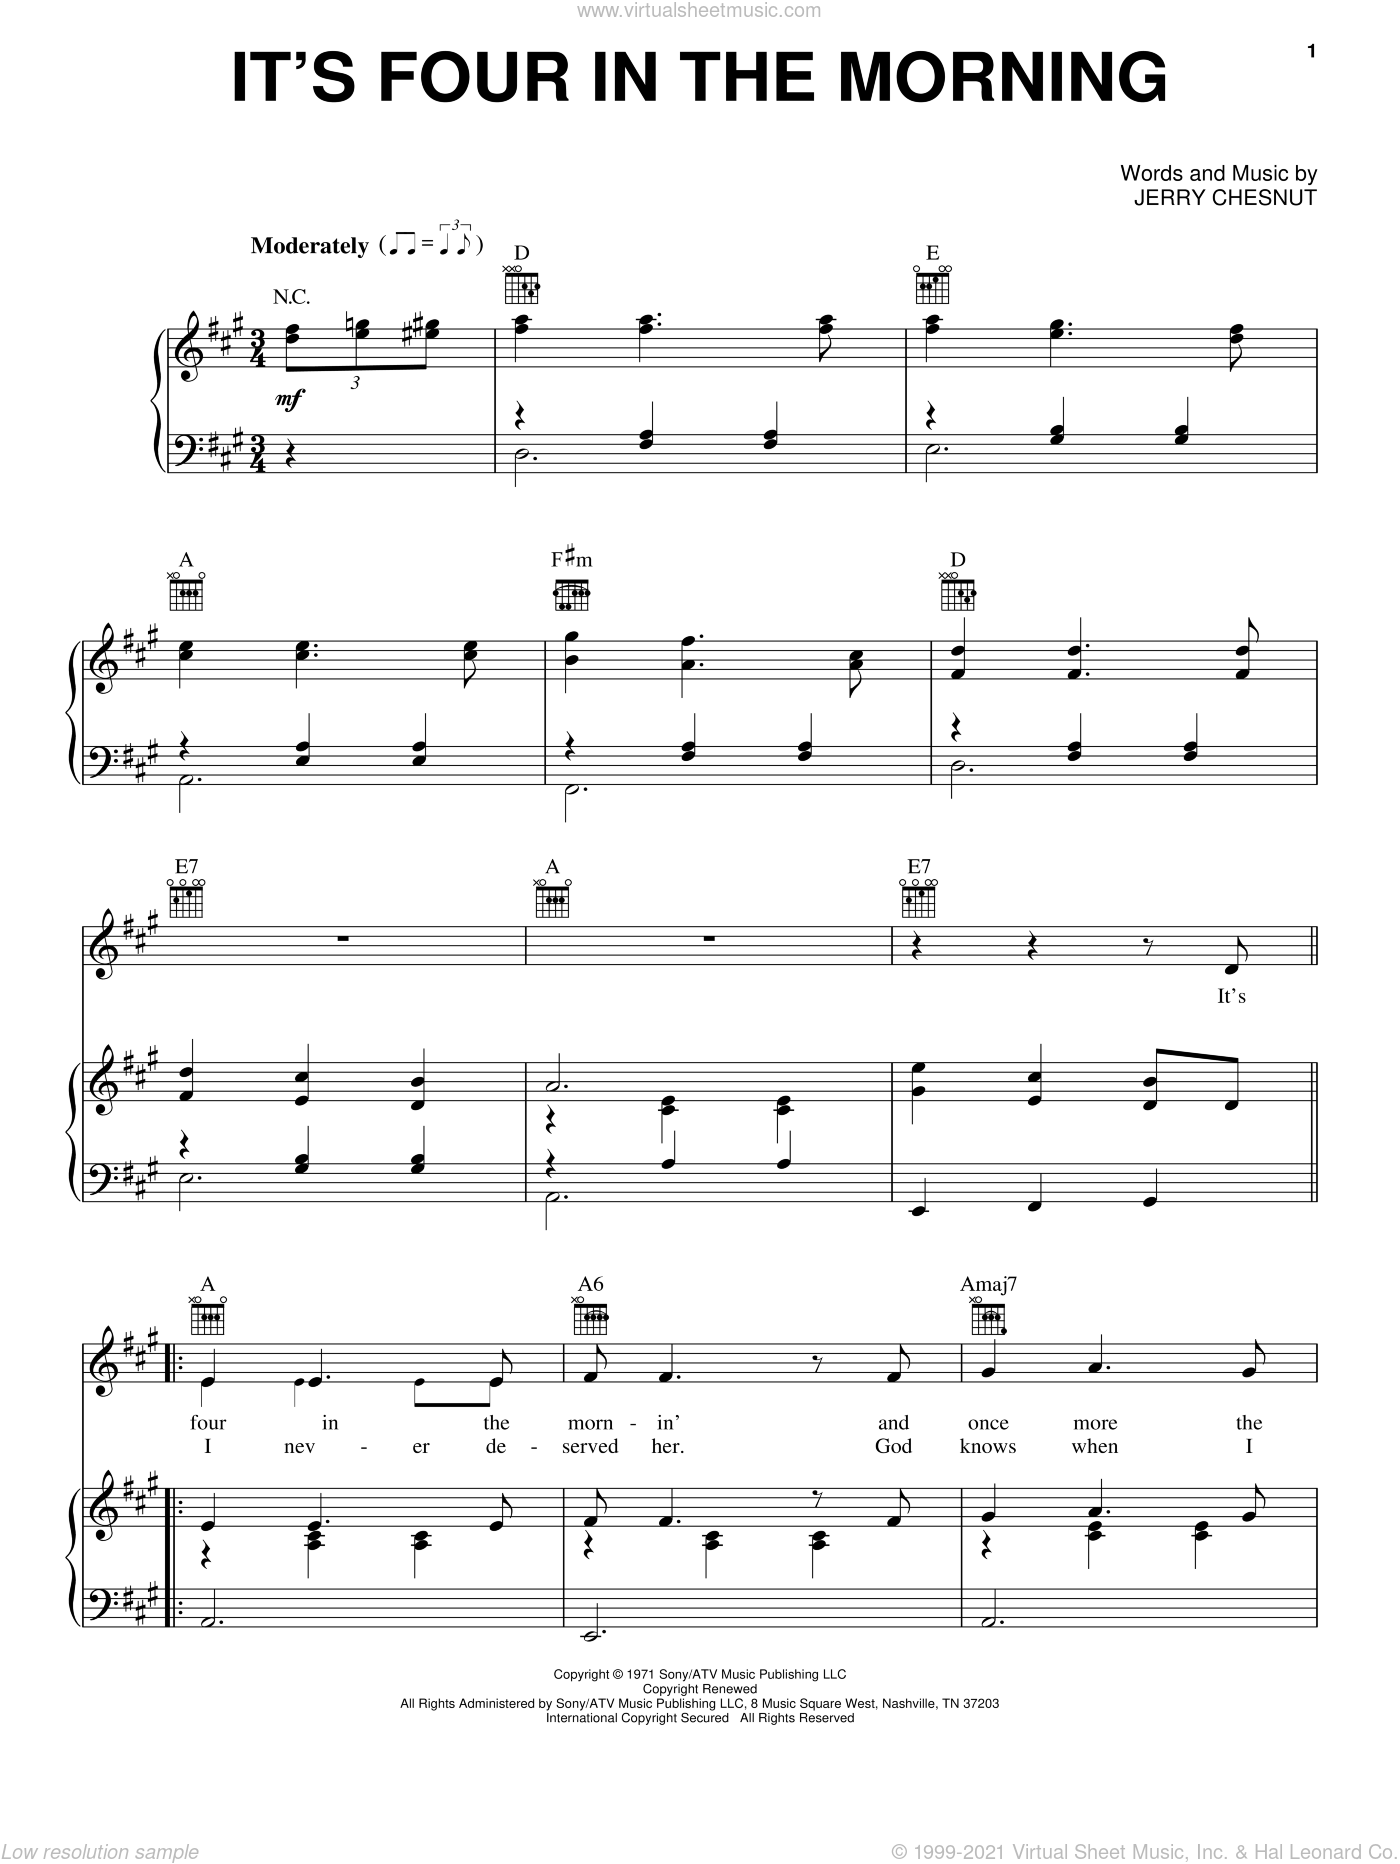 It's Four In The Morning sheet music for voice, piano or guitar by Faron Young and Jerry Chesnut, intermediate skill level